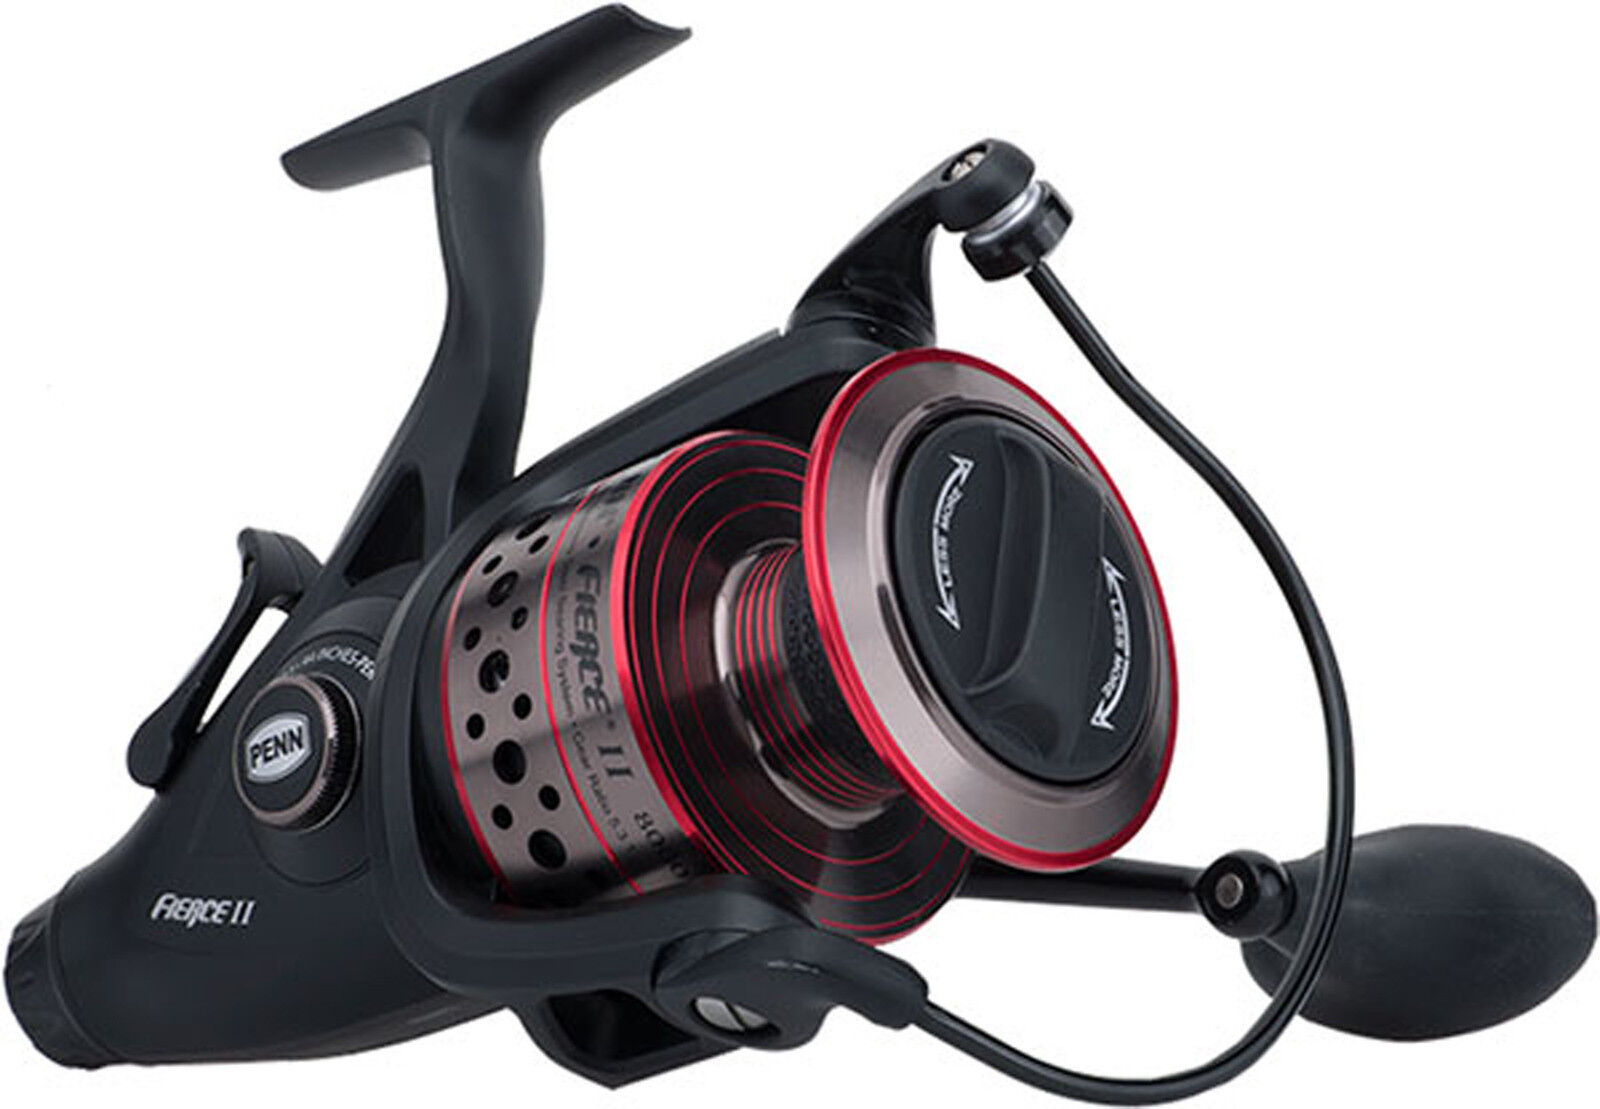 Penn Fierce II II Fierce Live Liner Spinning Reel FRCII8000LL 3dd4bb